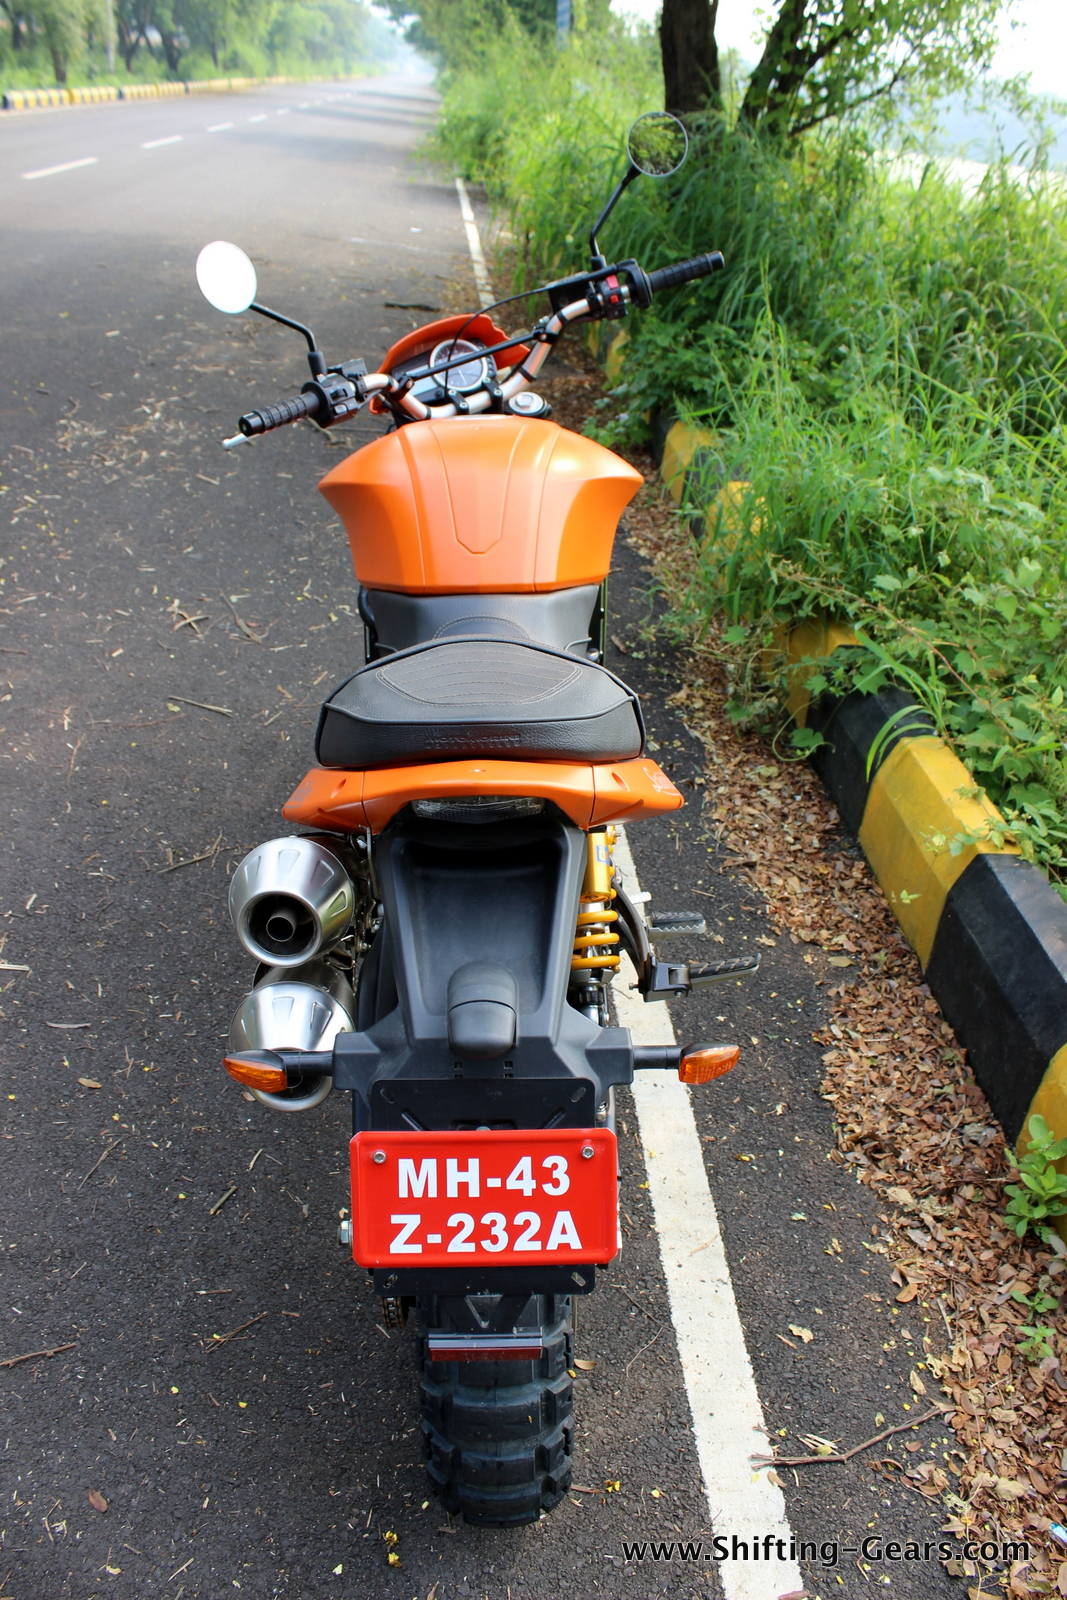 Getting on and off the bike for the rider itself is a far cry, for the pillion, it's even tougher